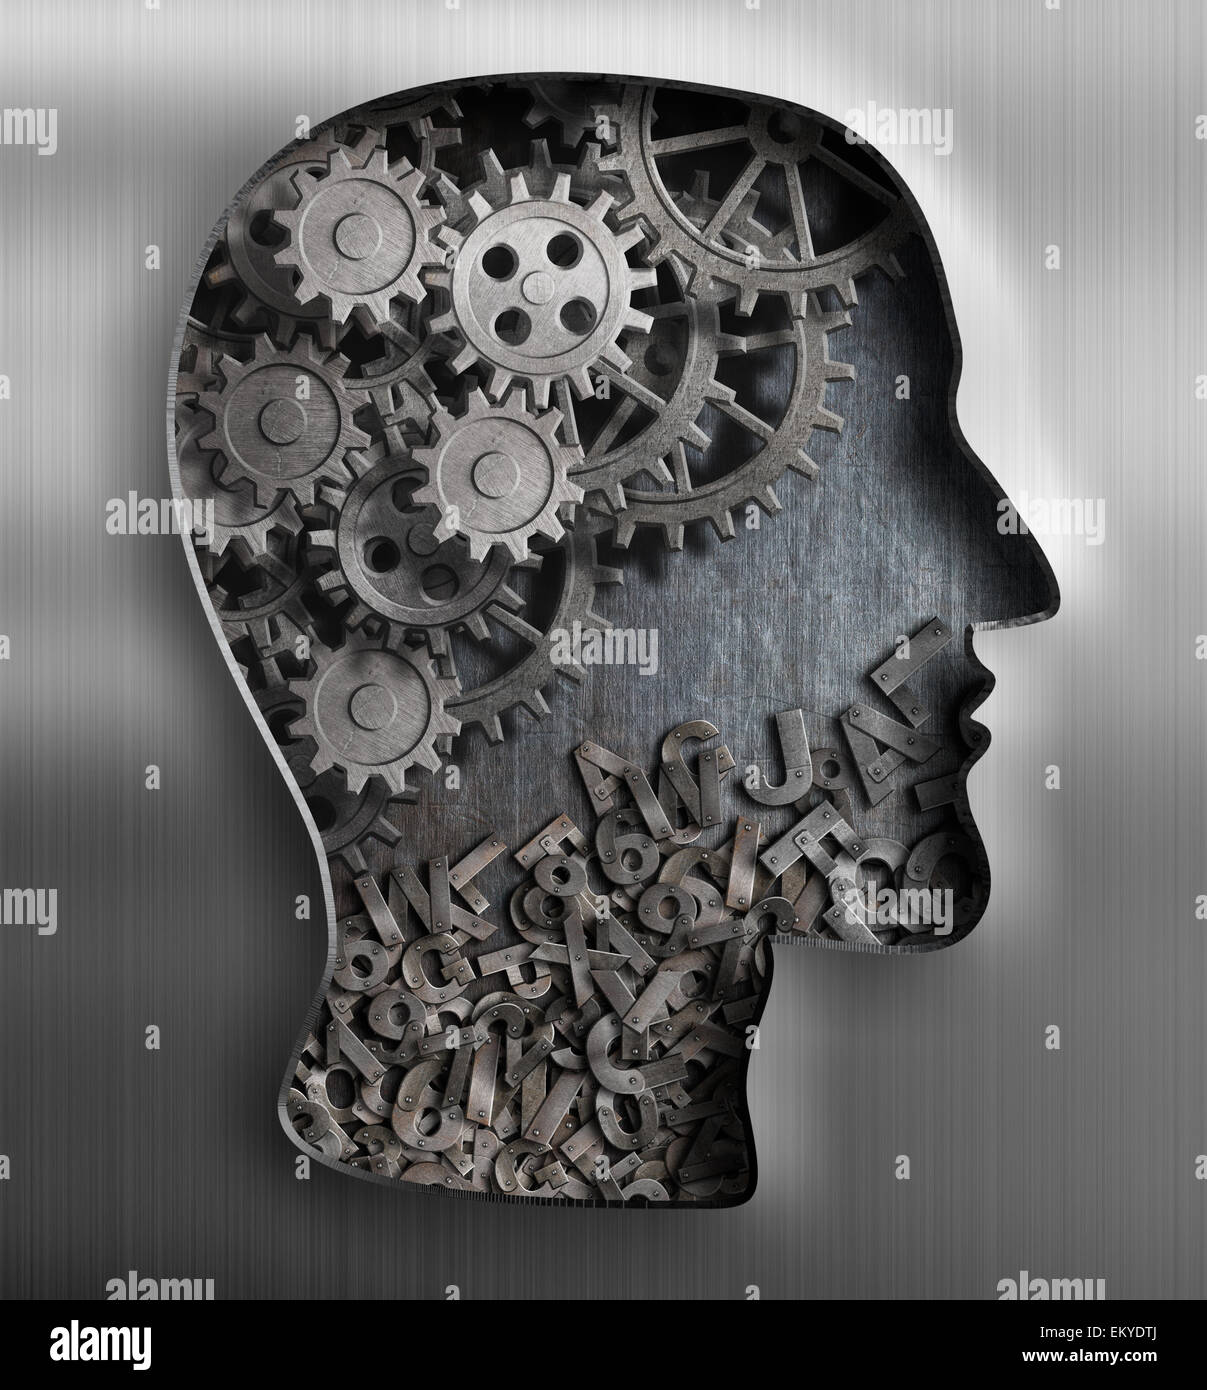 Metal brain. La pensée, psychologie, créativité, langue concept. Photo Stock